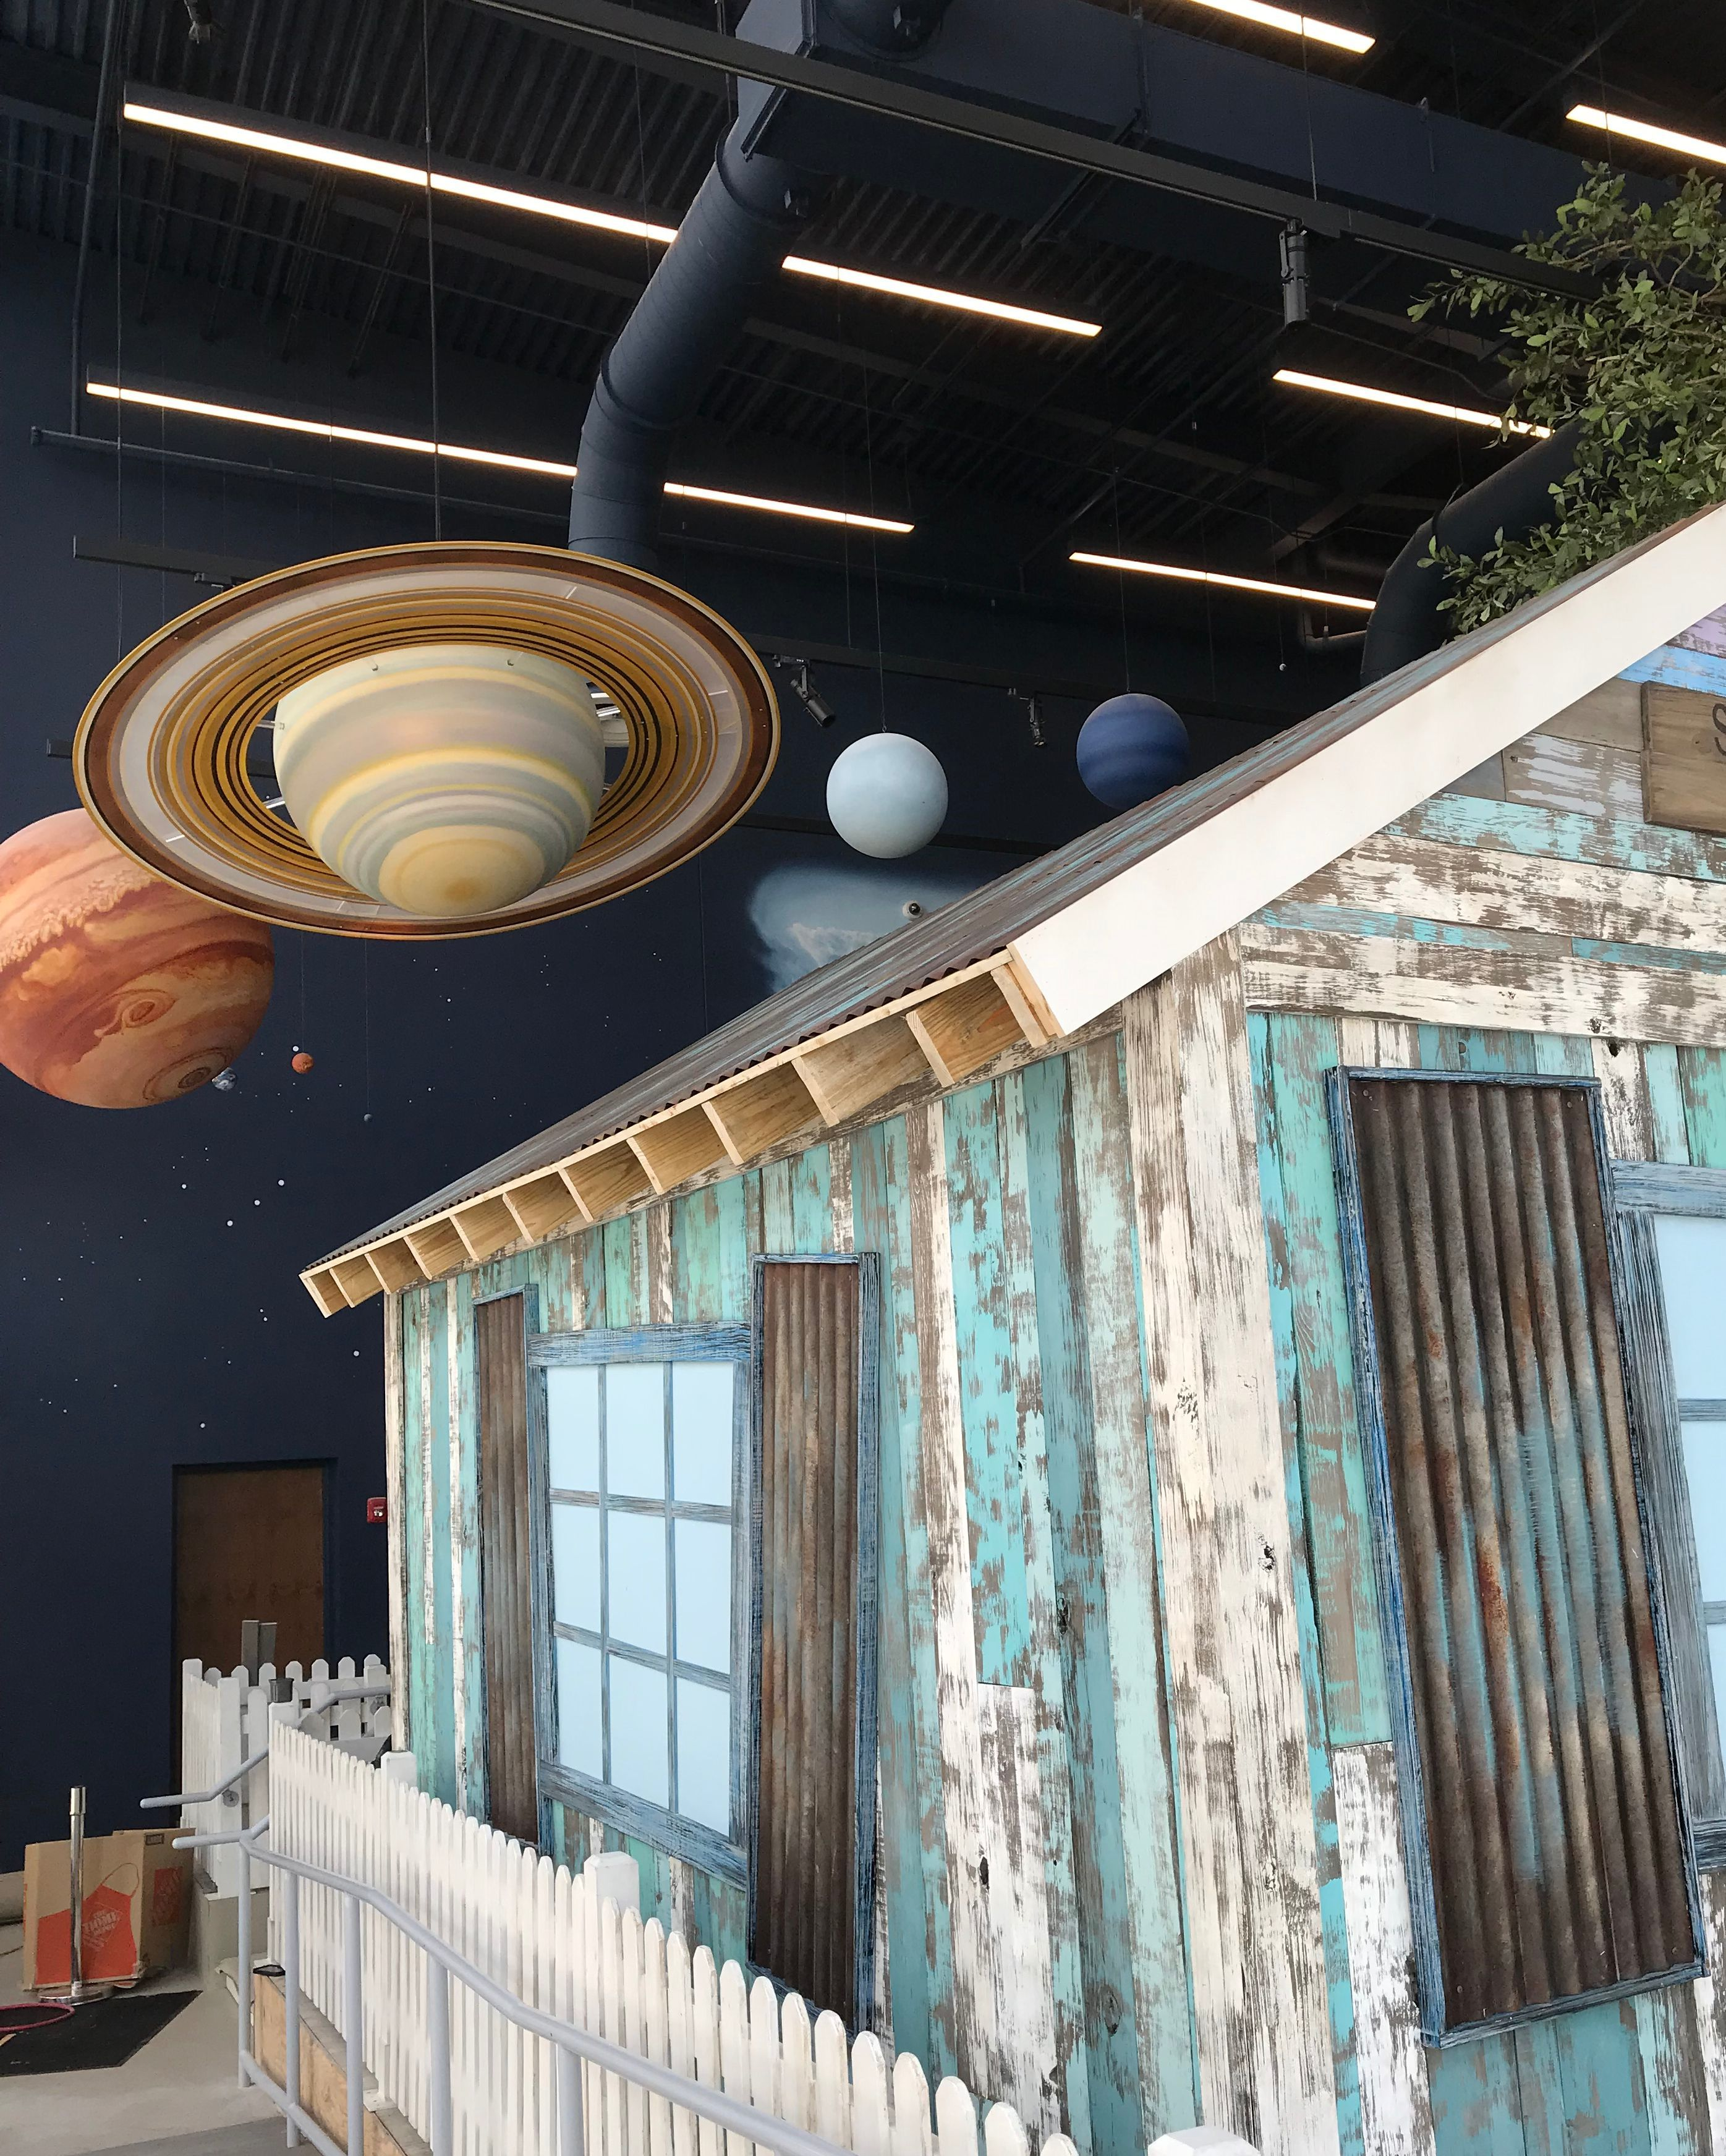 KidSpace   Science and nature, Our solar system, Solar system